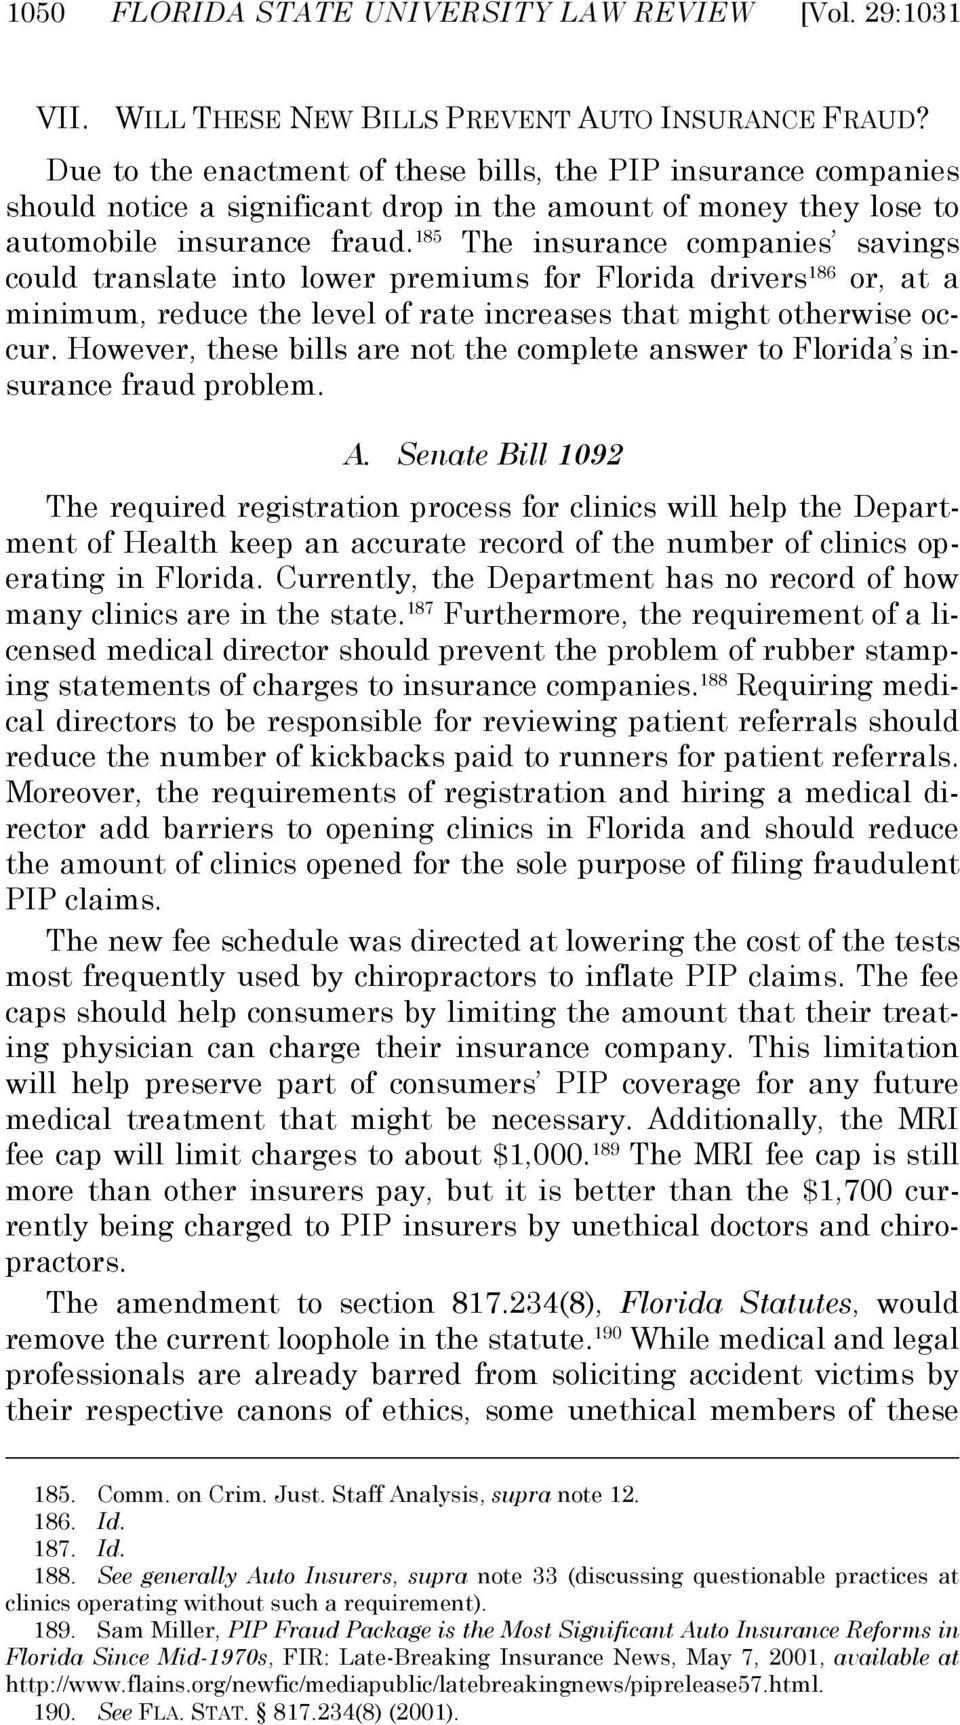 185 The insurance companies savings could translate into lower premiums for Florida drivers 186 or, at a minimum, reduce the level of rate increases that might otherwise occur.